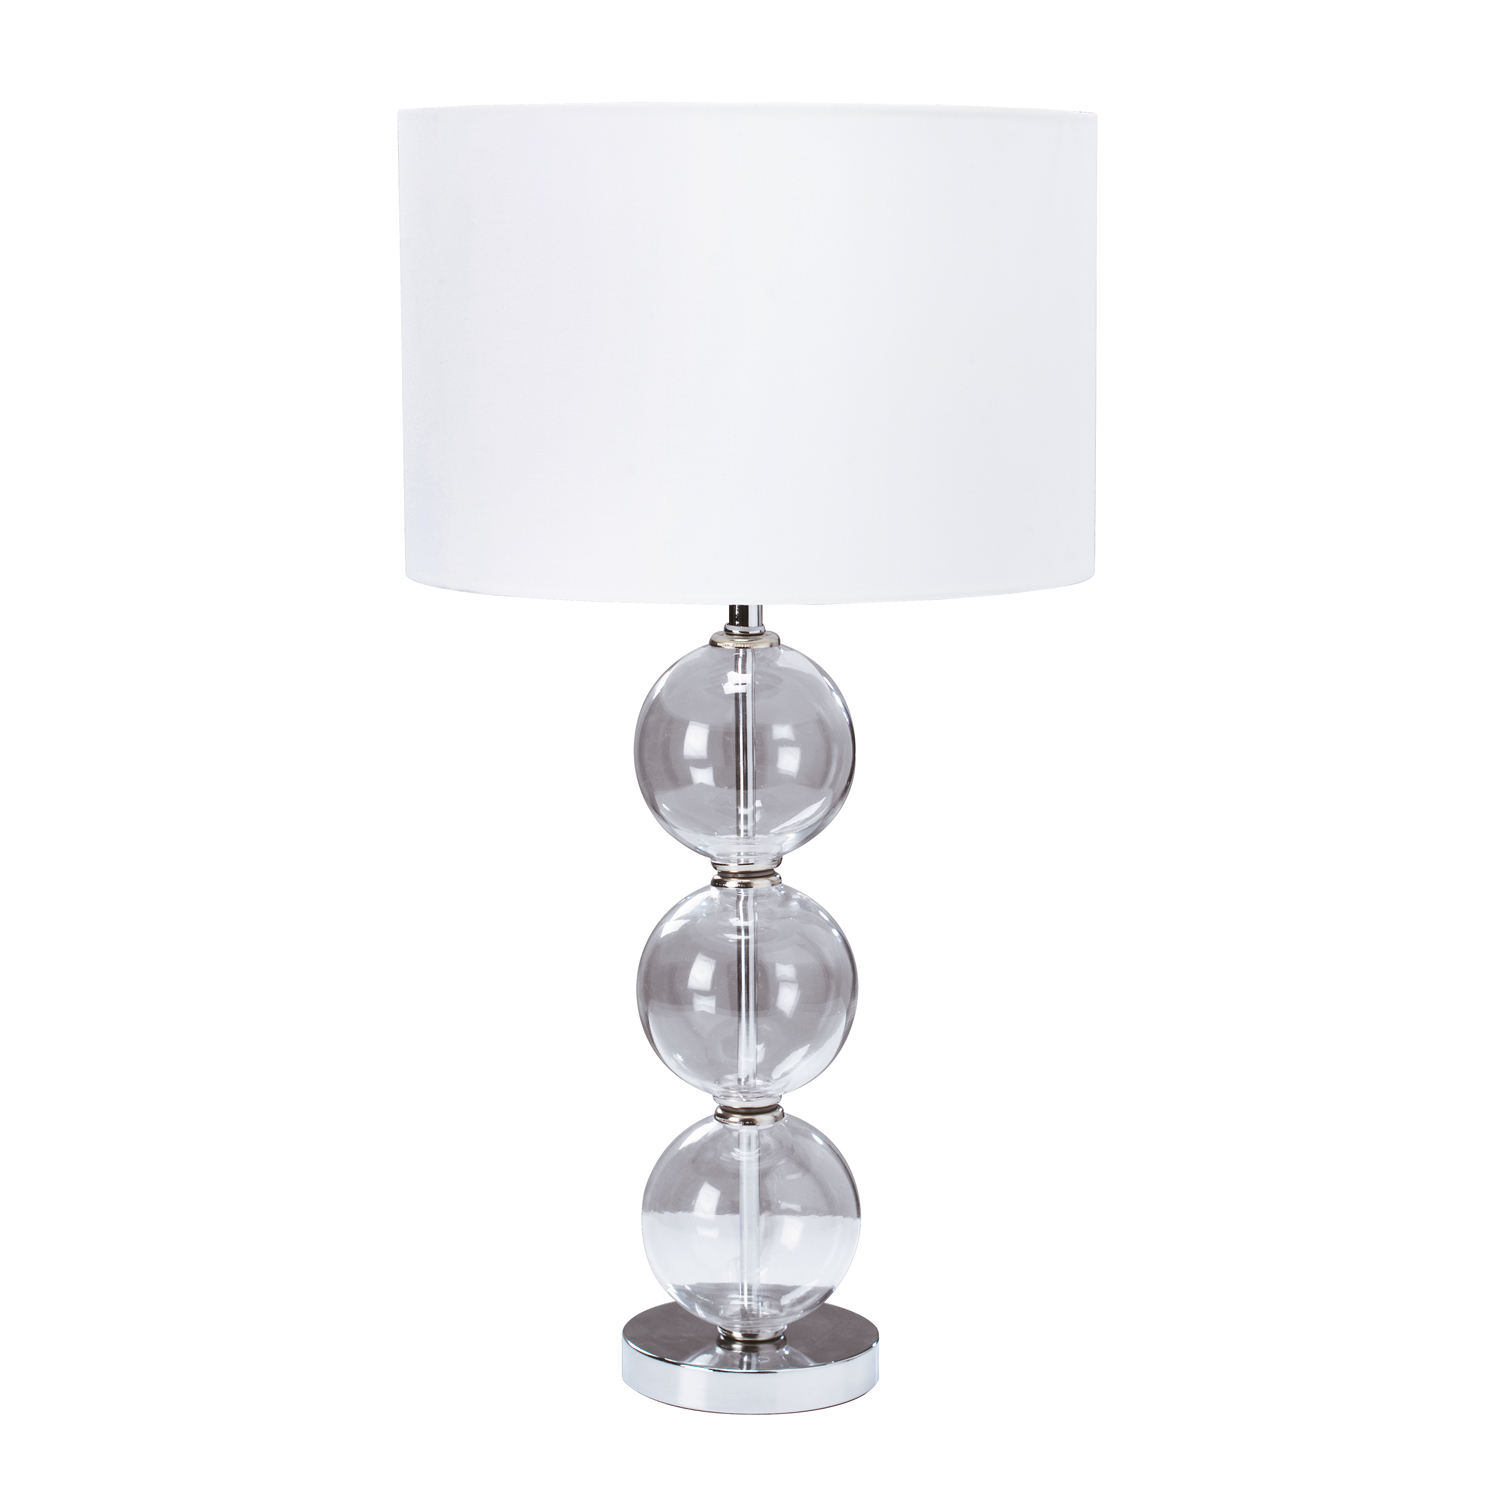 Glass Ball Lamps 10 Ways To Add Personality And